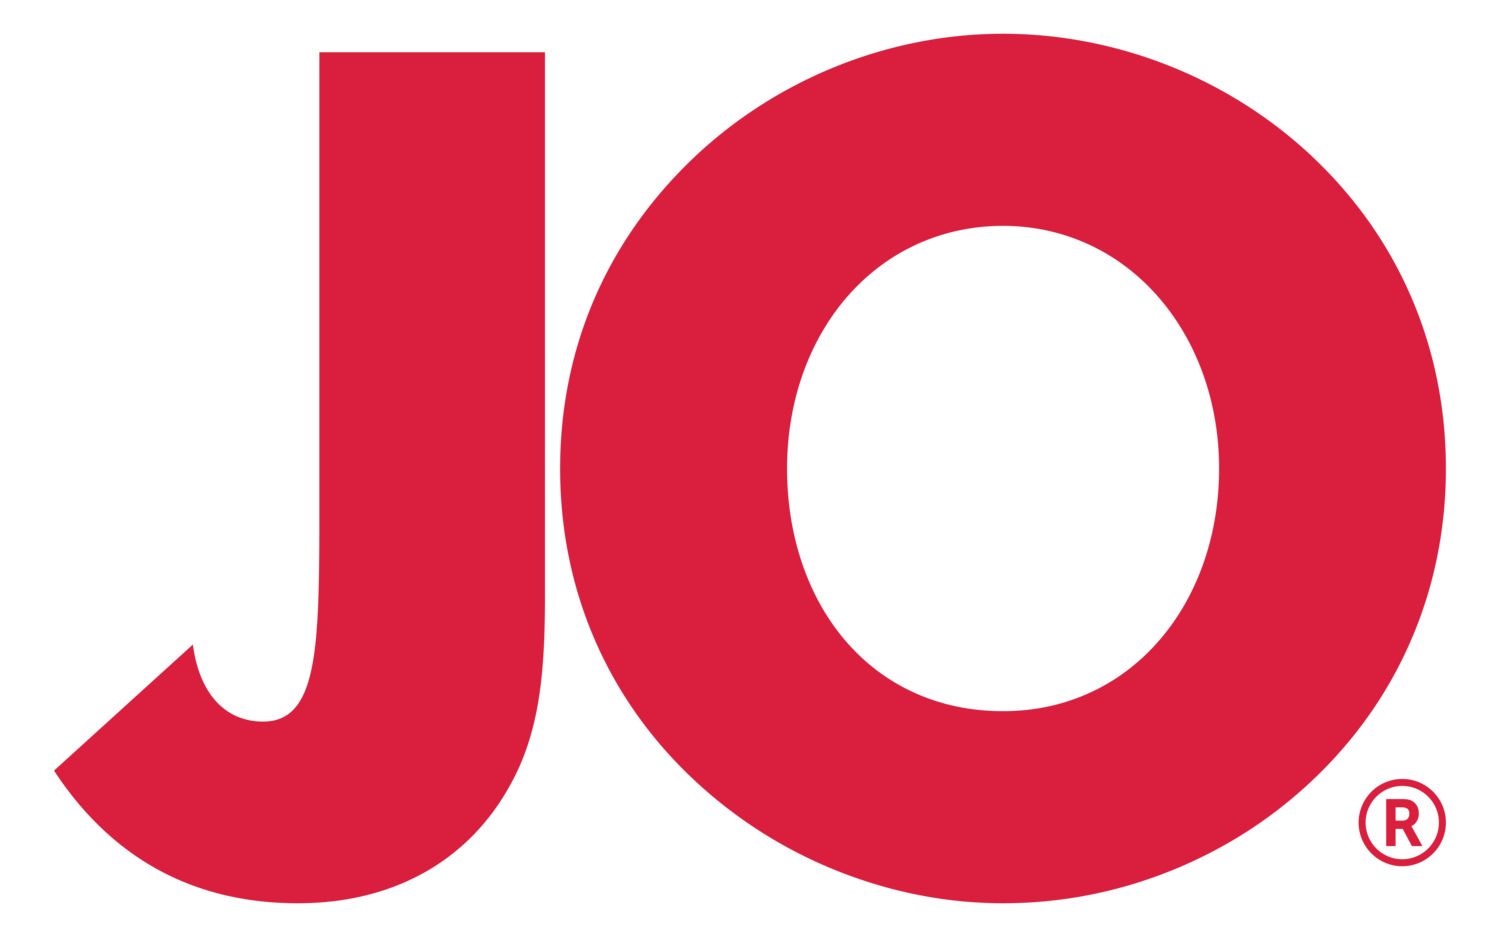 First formulated back in 1999 for a group of gynecologists, JO® PREMIUM is our signature line personal lubricants. Designed to supplement the body's natural lubrication and enhance the pleasures of intimacy. JO® PREMIUM is free of preservatives and formulated using only the highest quality ingredients.